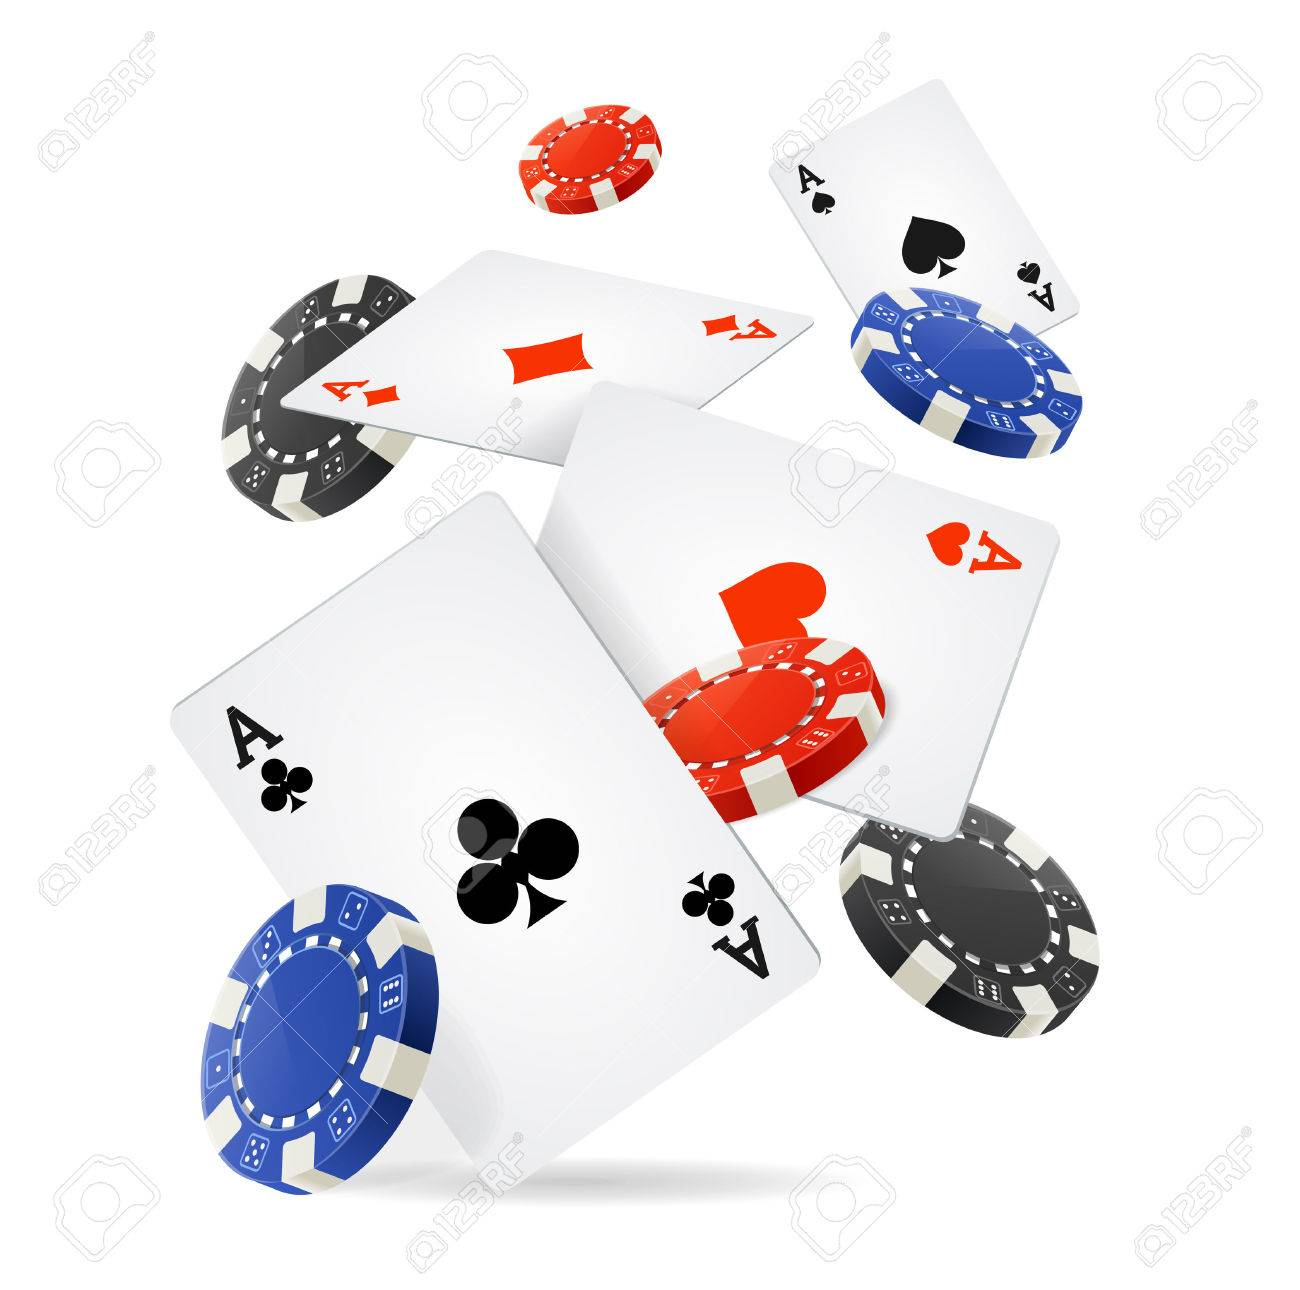 Casino Concept Floating Cards and Chips. Vector illustration - 50793484